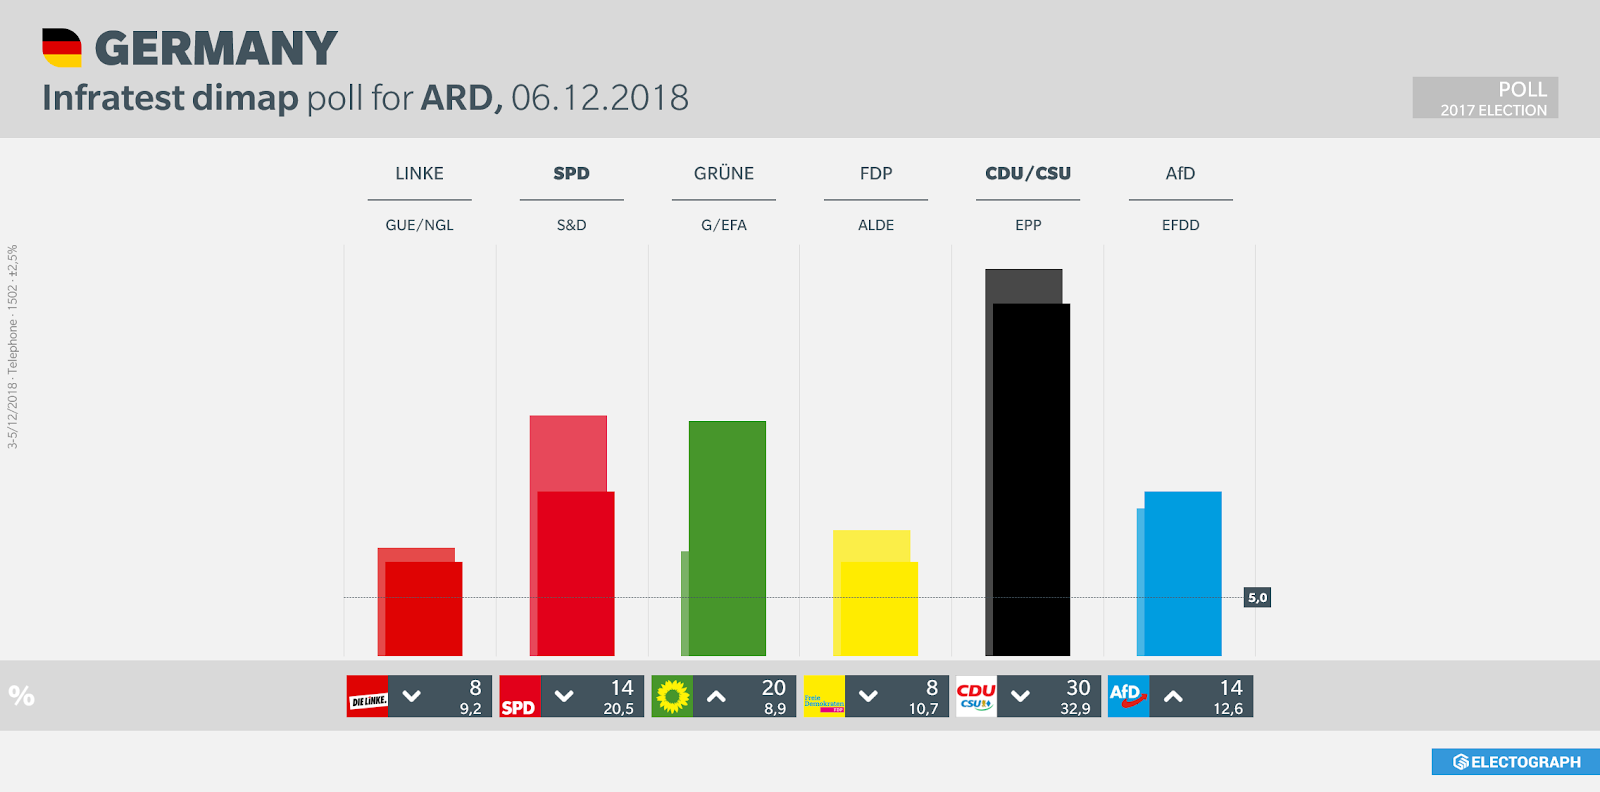 GERMANY: Infratest dimap poll chart for ARD, 6 December 2018